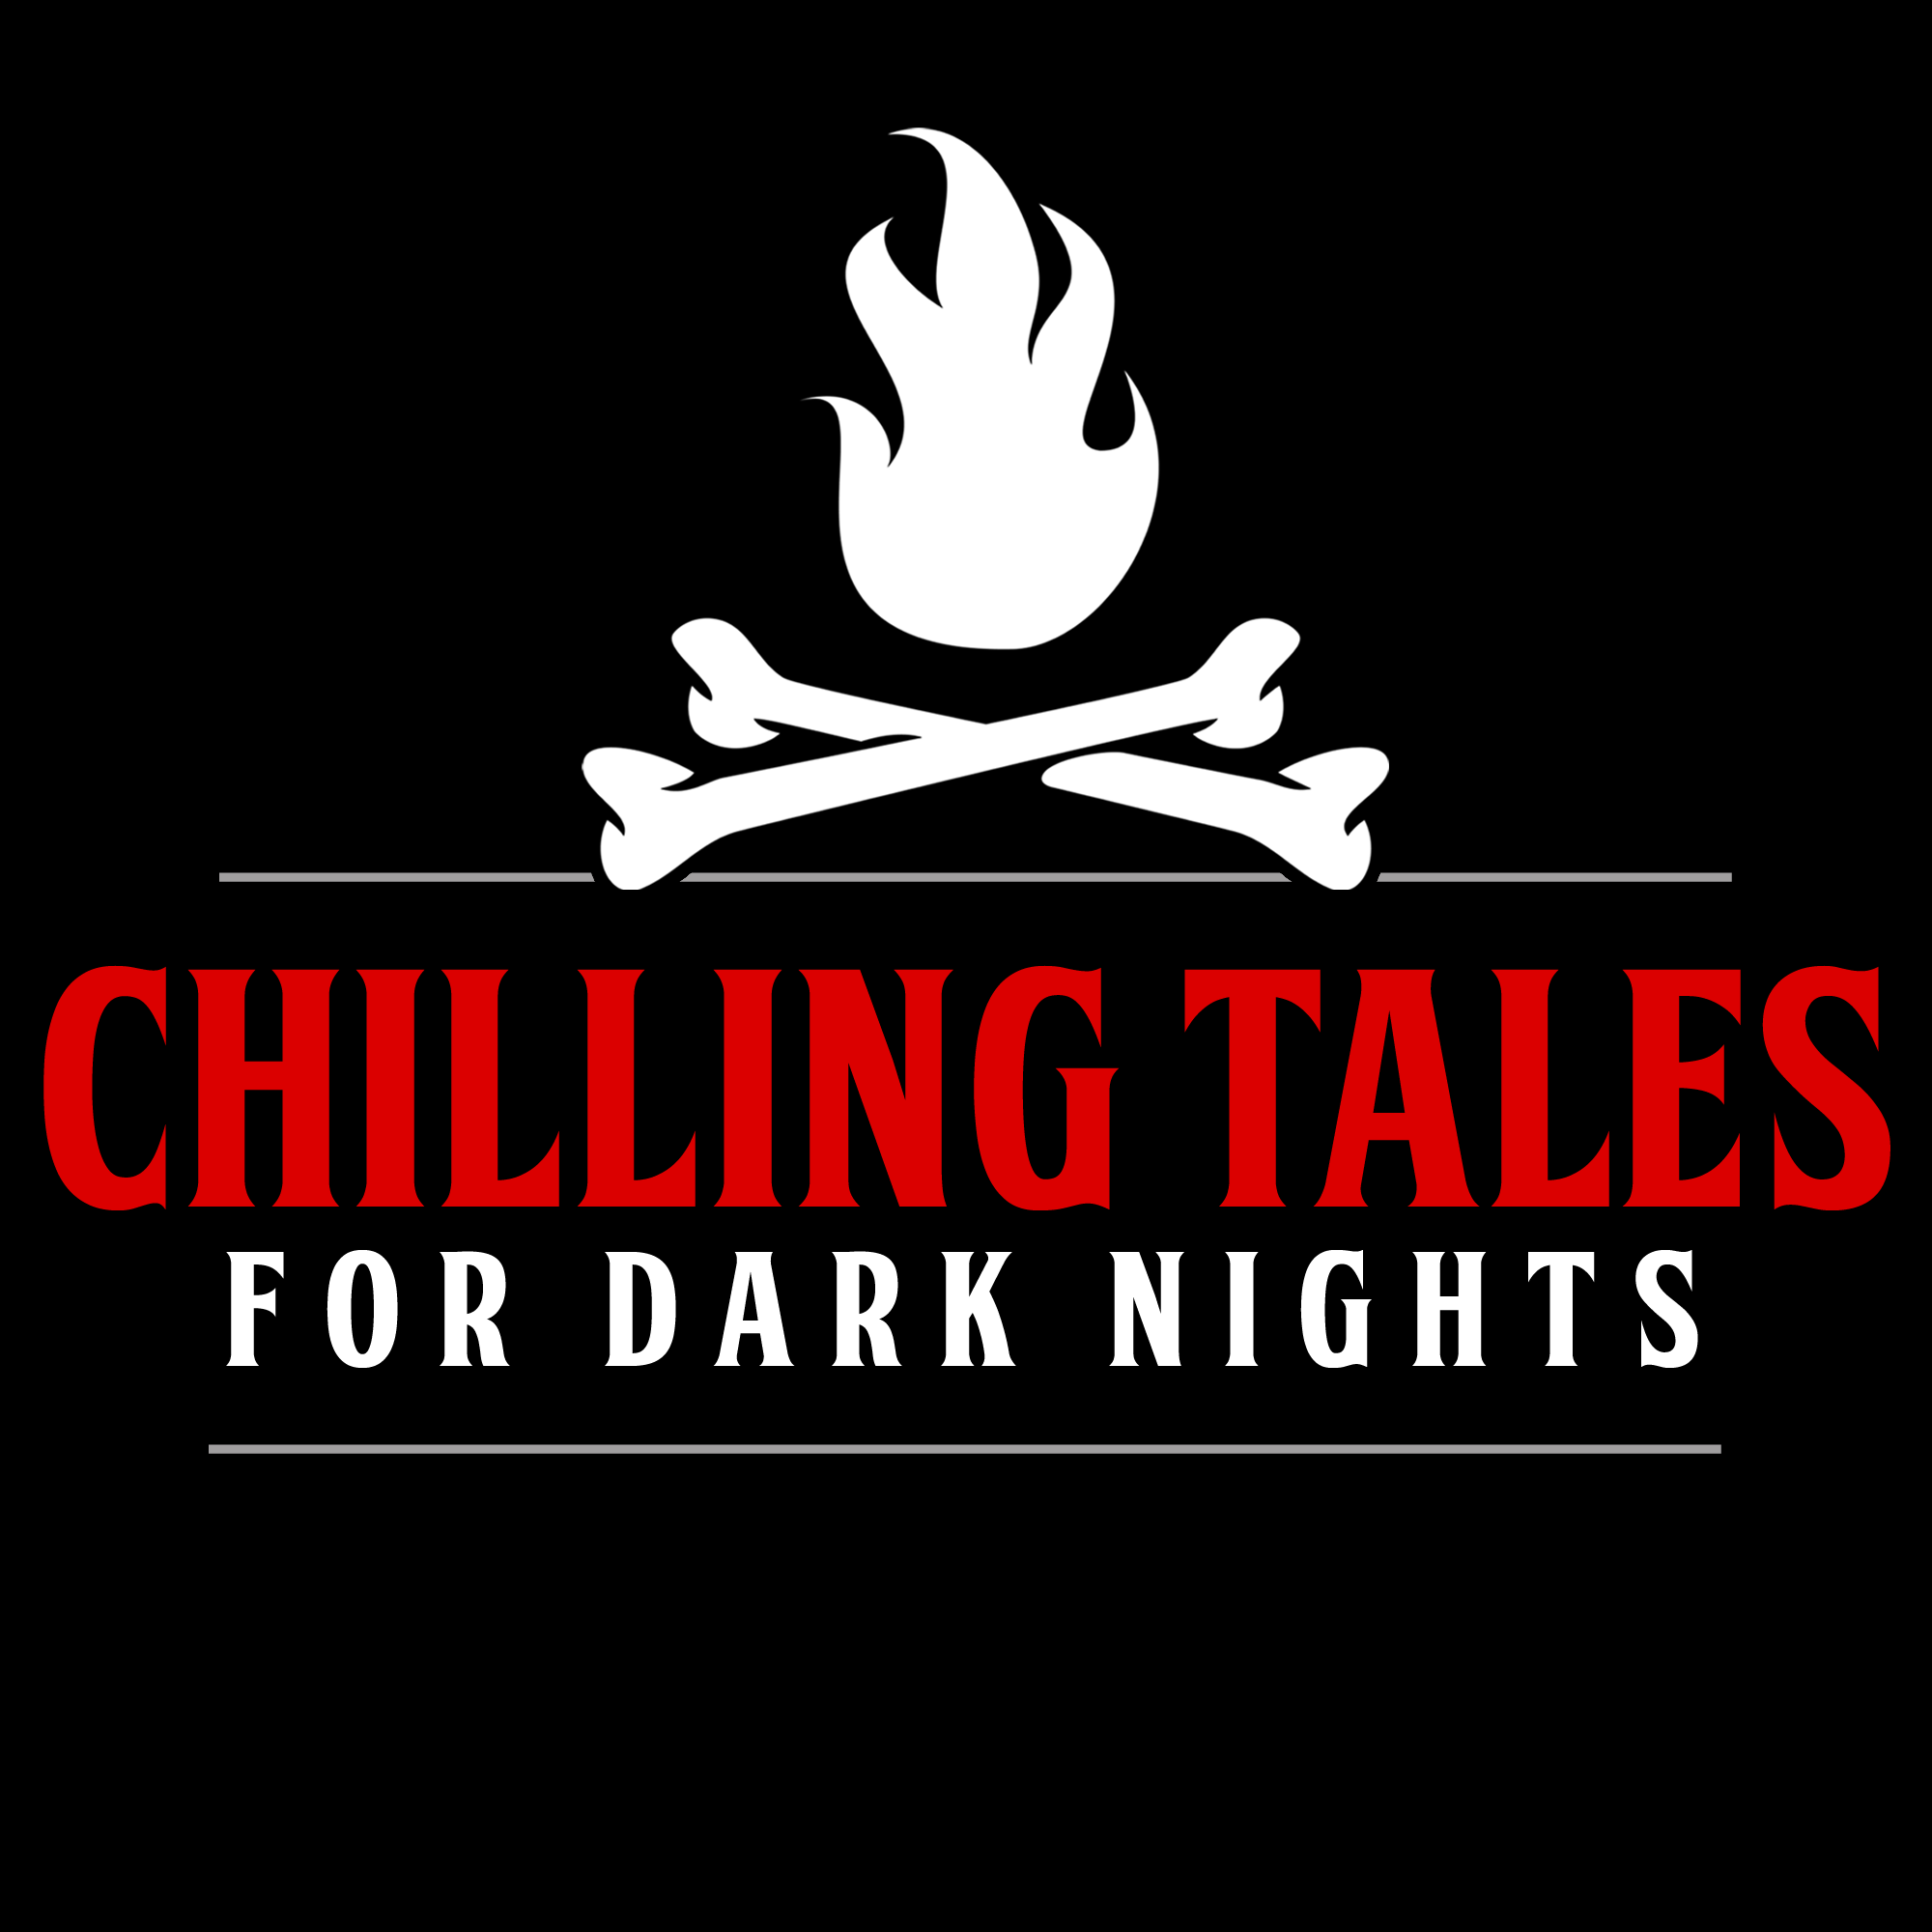 Chilling Tales for Dark Nights